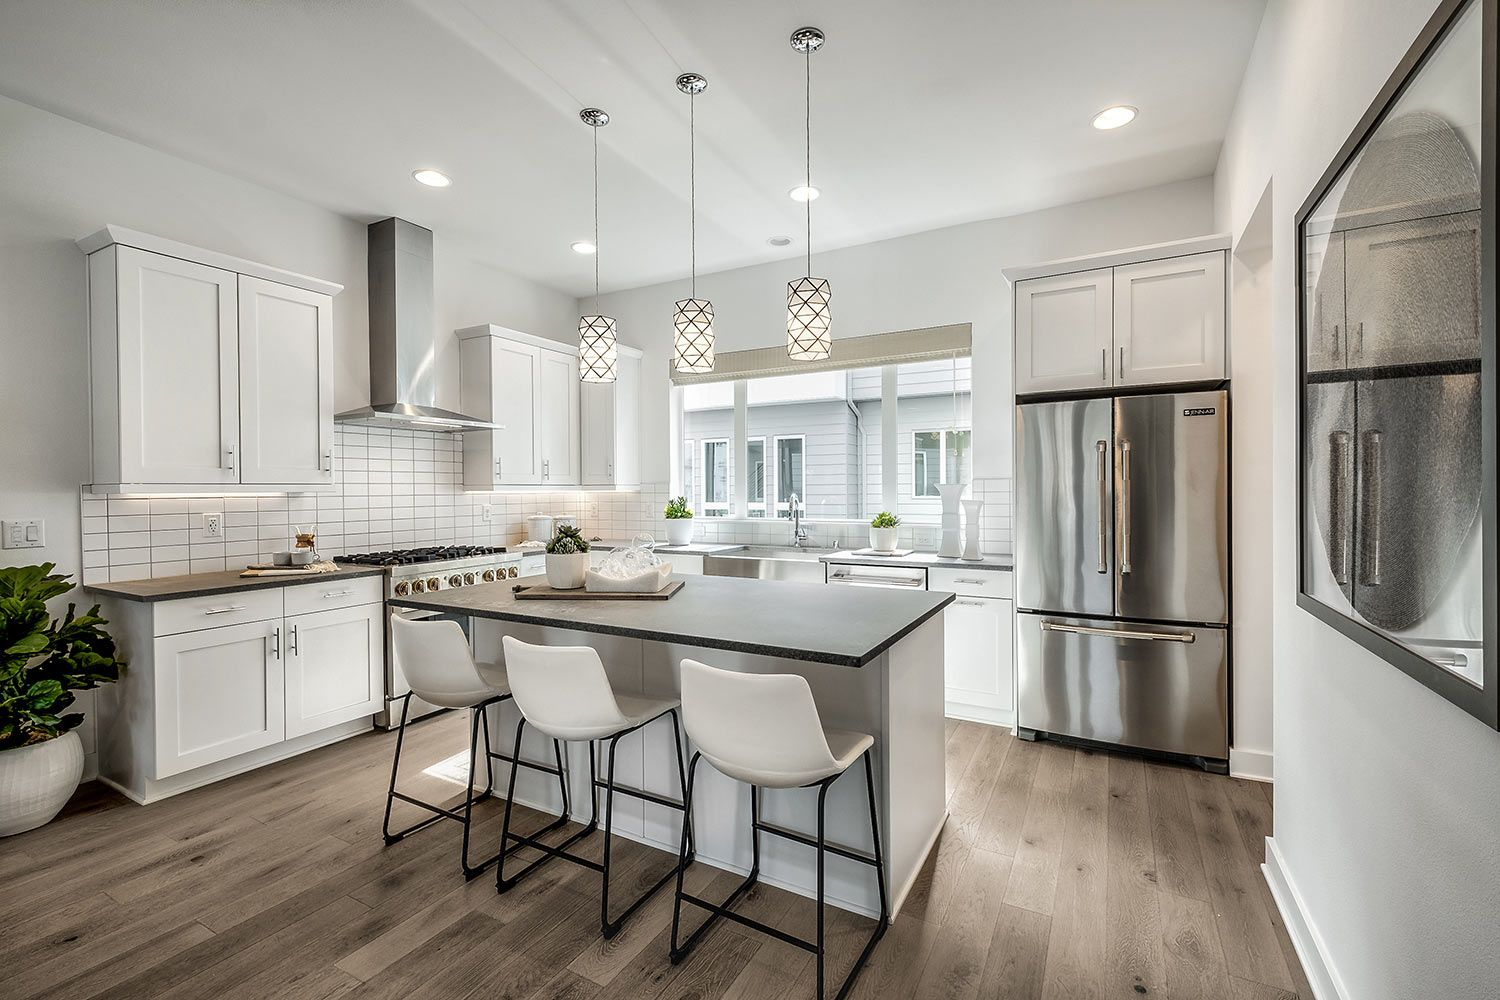 Kitchen featured in the Plan 3 By Quadrant Homes in Seattle-Bellevue, WA